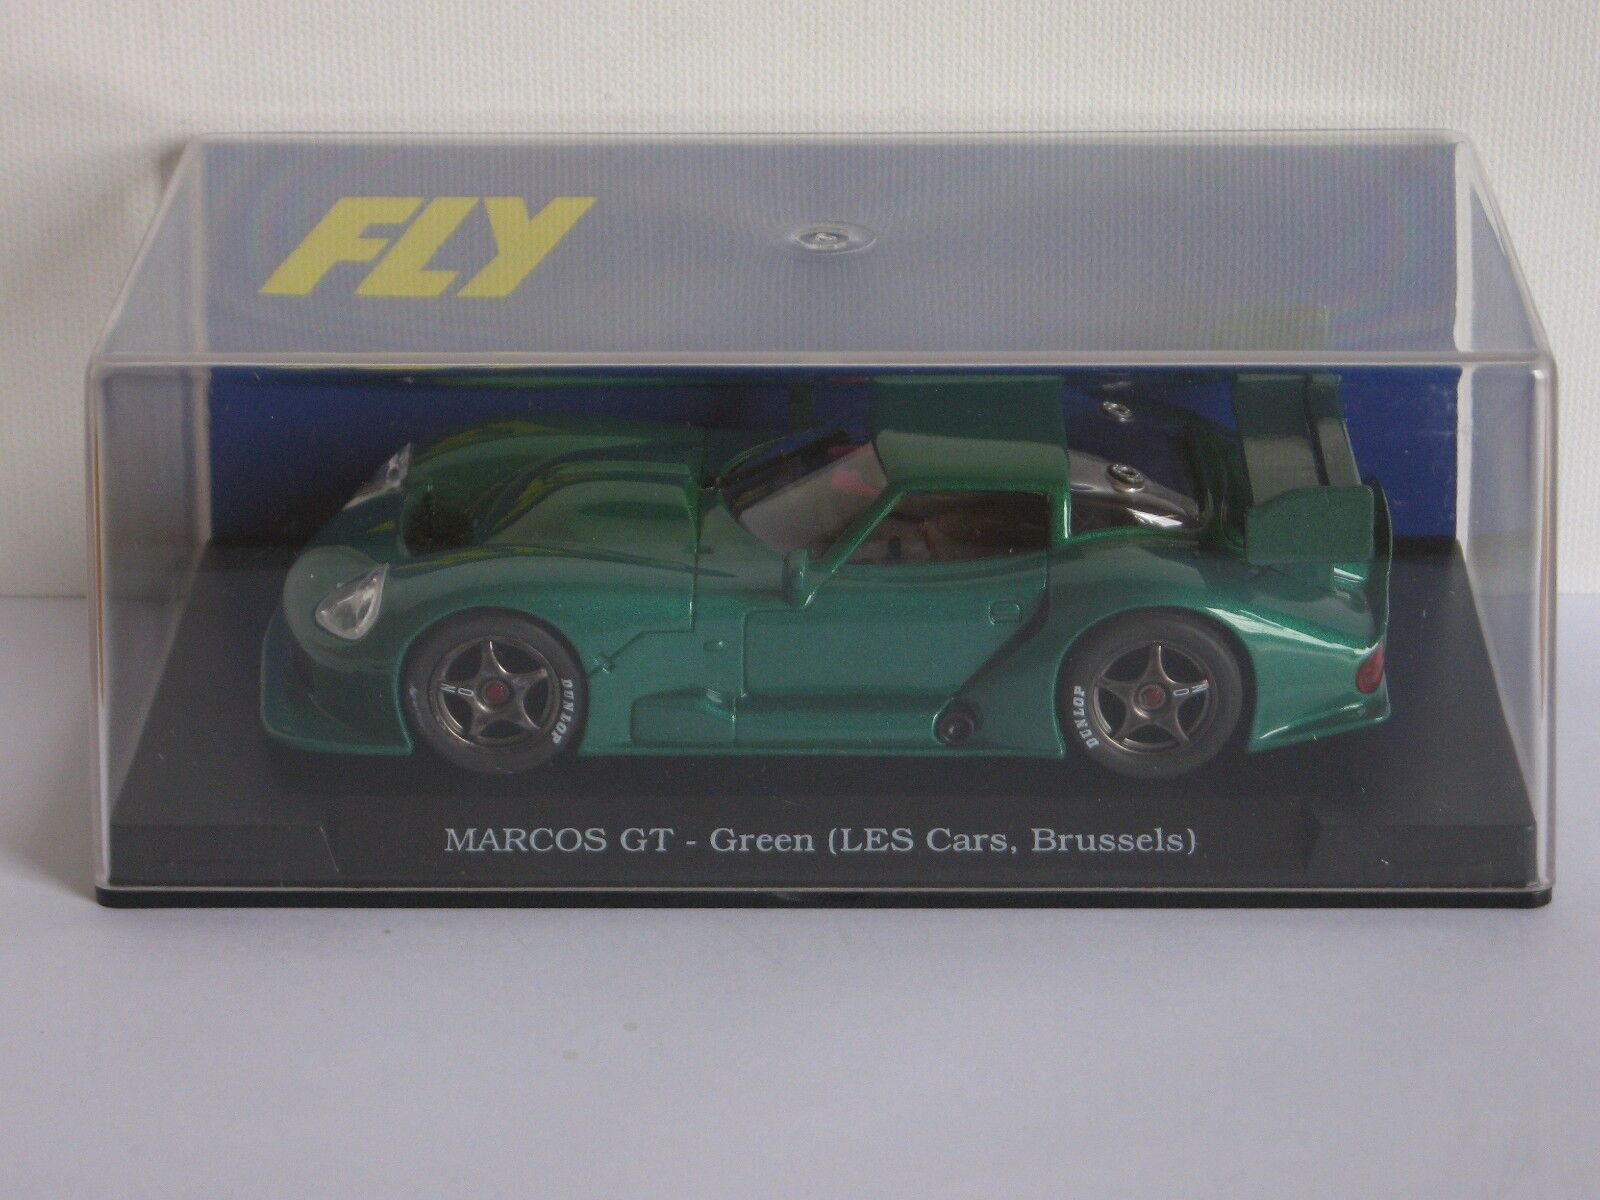 FLY Car Marcos LM 600 Green (LES Cars, Brussels) Special Edition - Ref. E23